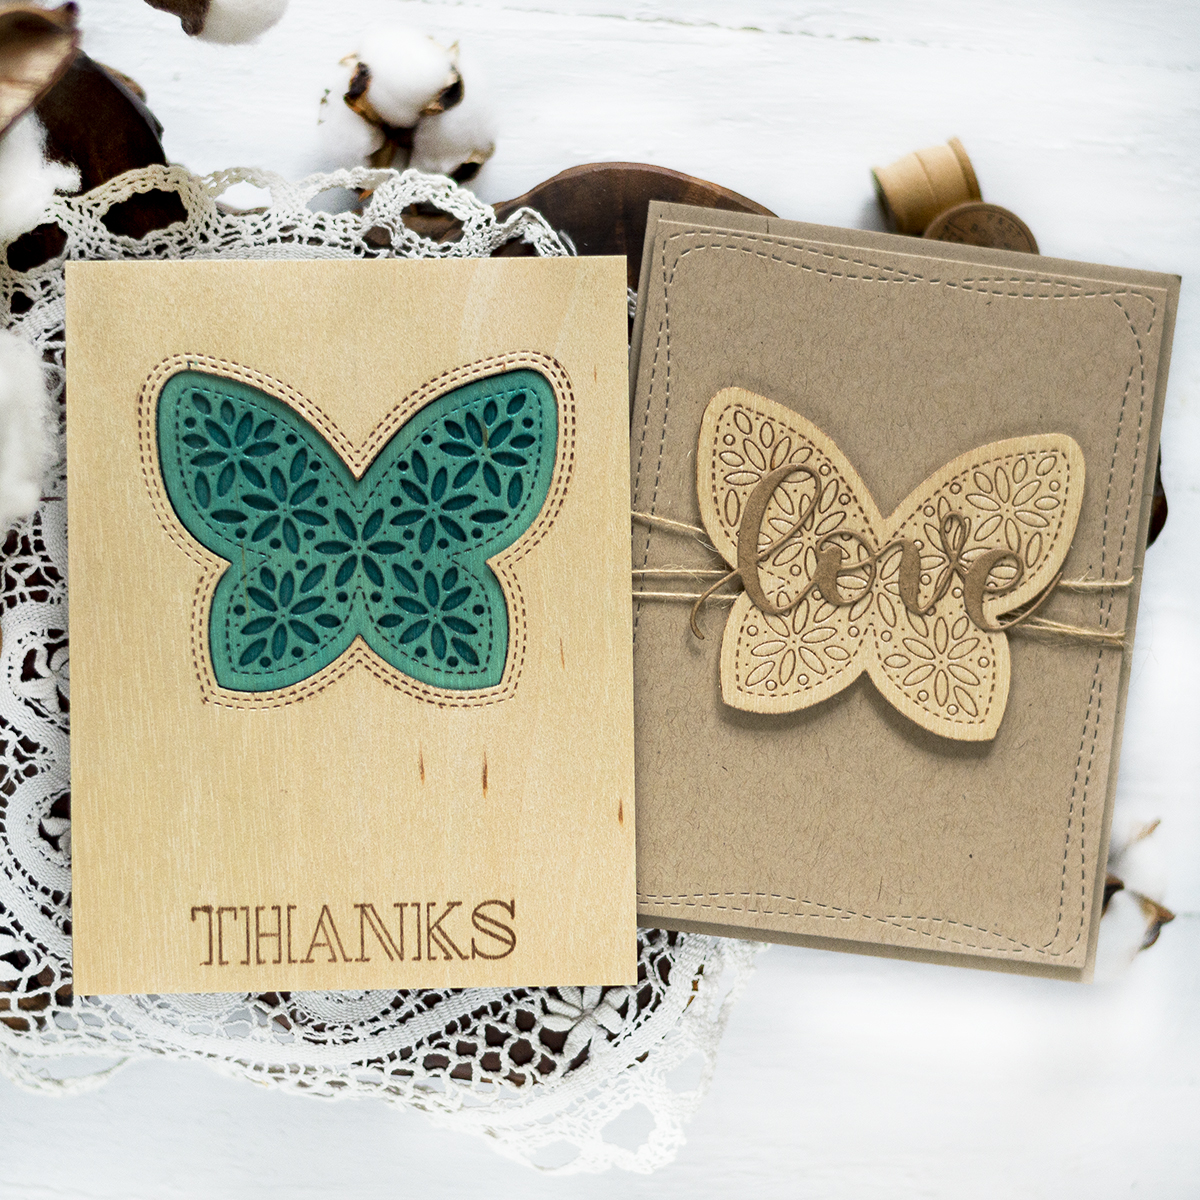 Wooden Butterfly Cards. Card by Svitlana Shayevich